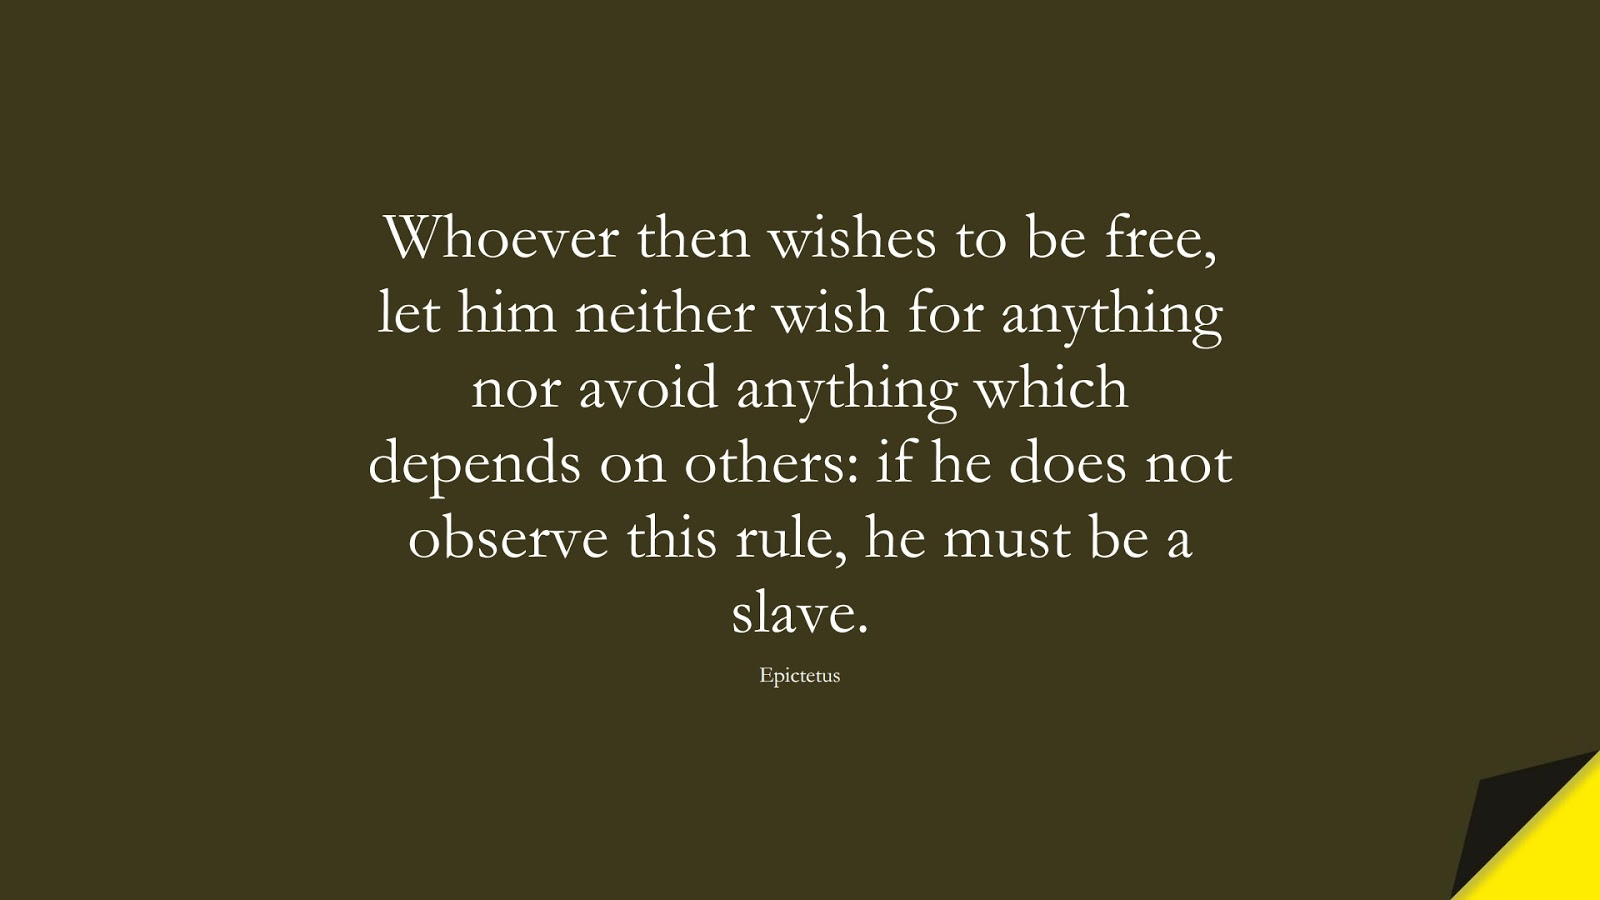 Whoever then wishes to be free, let him neither wish for anything nor avoid anything which depends on others: if he does not observe this rule, he must be a slave. (Epictetus);  #CharacterQuotes